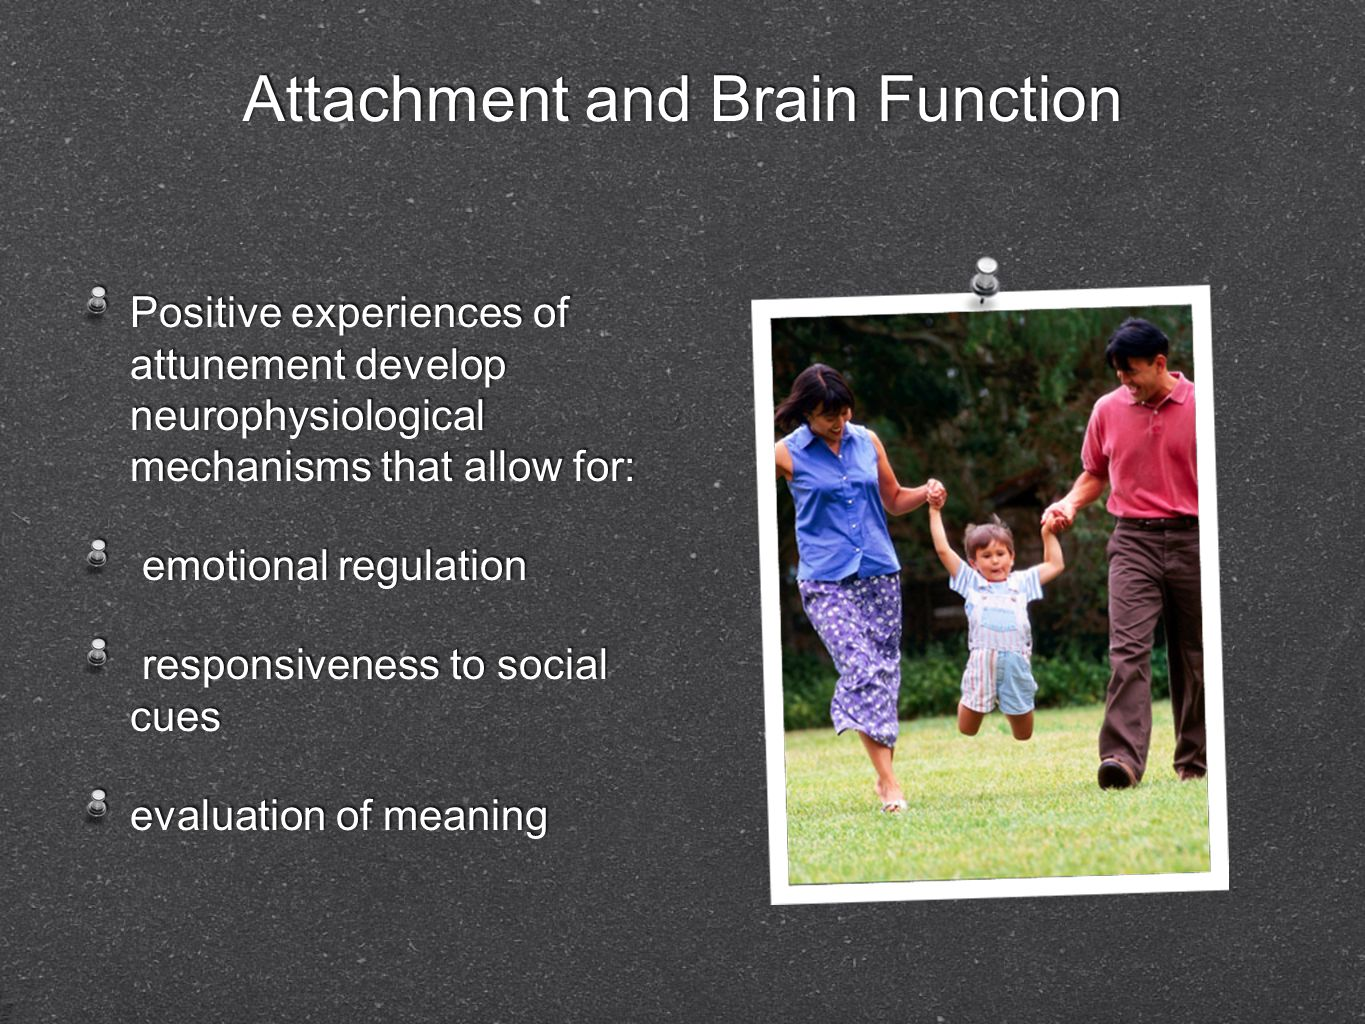 Attachment and Brain Function